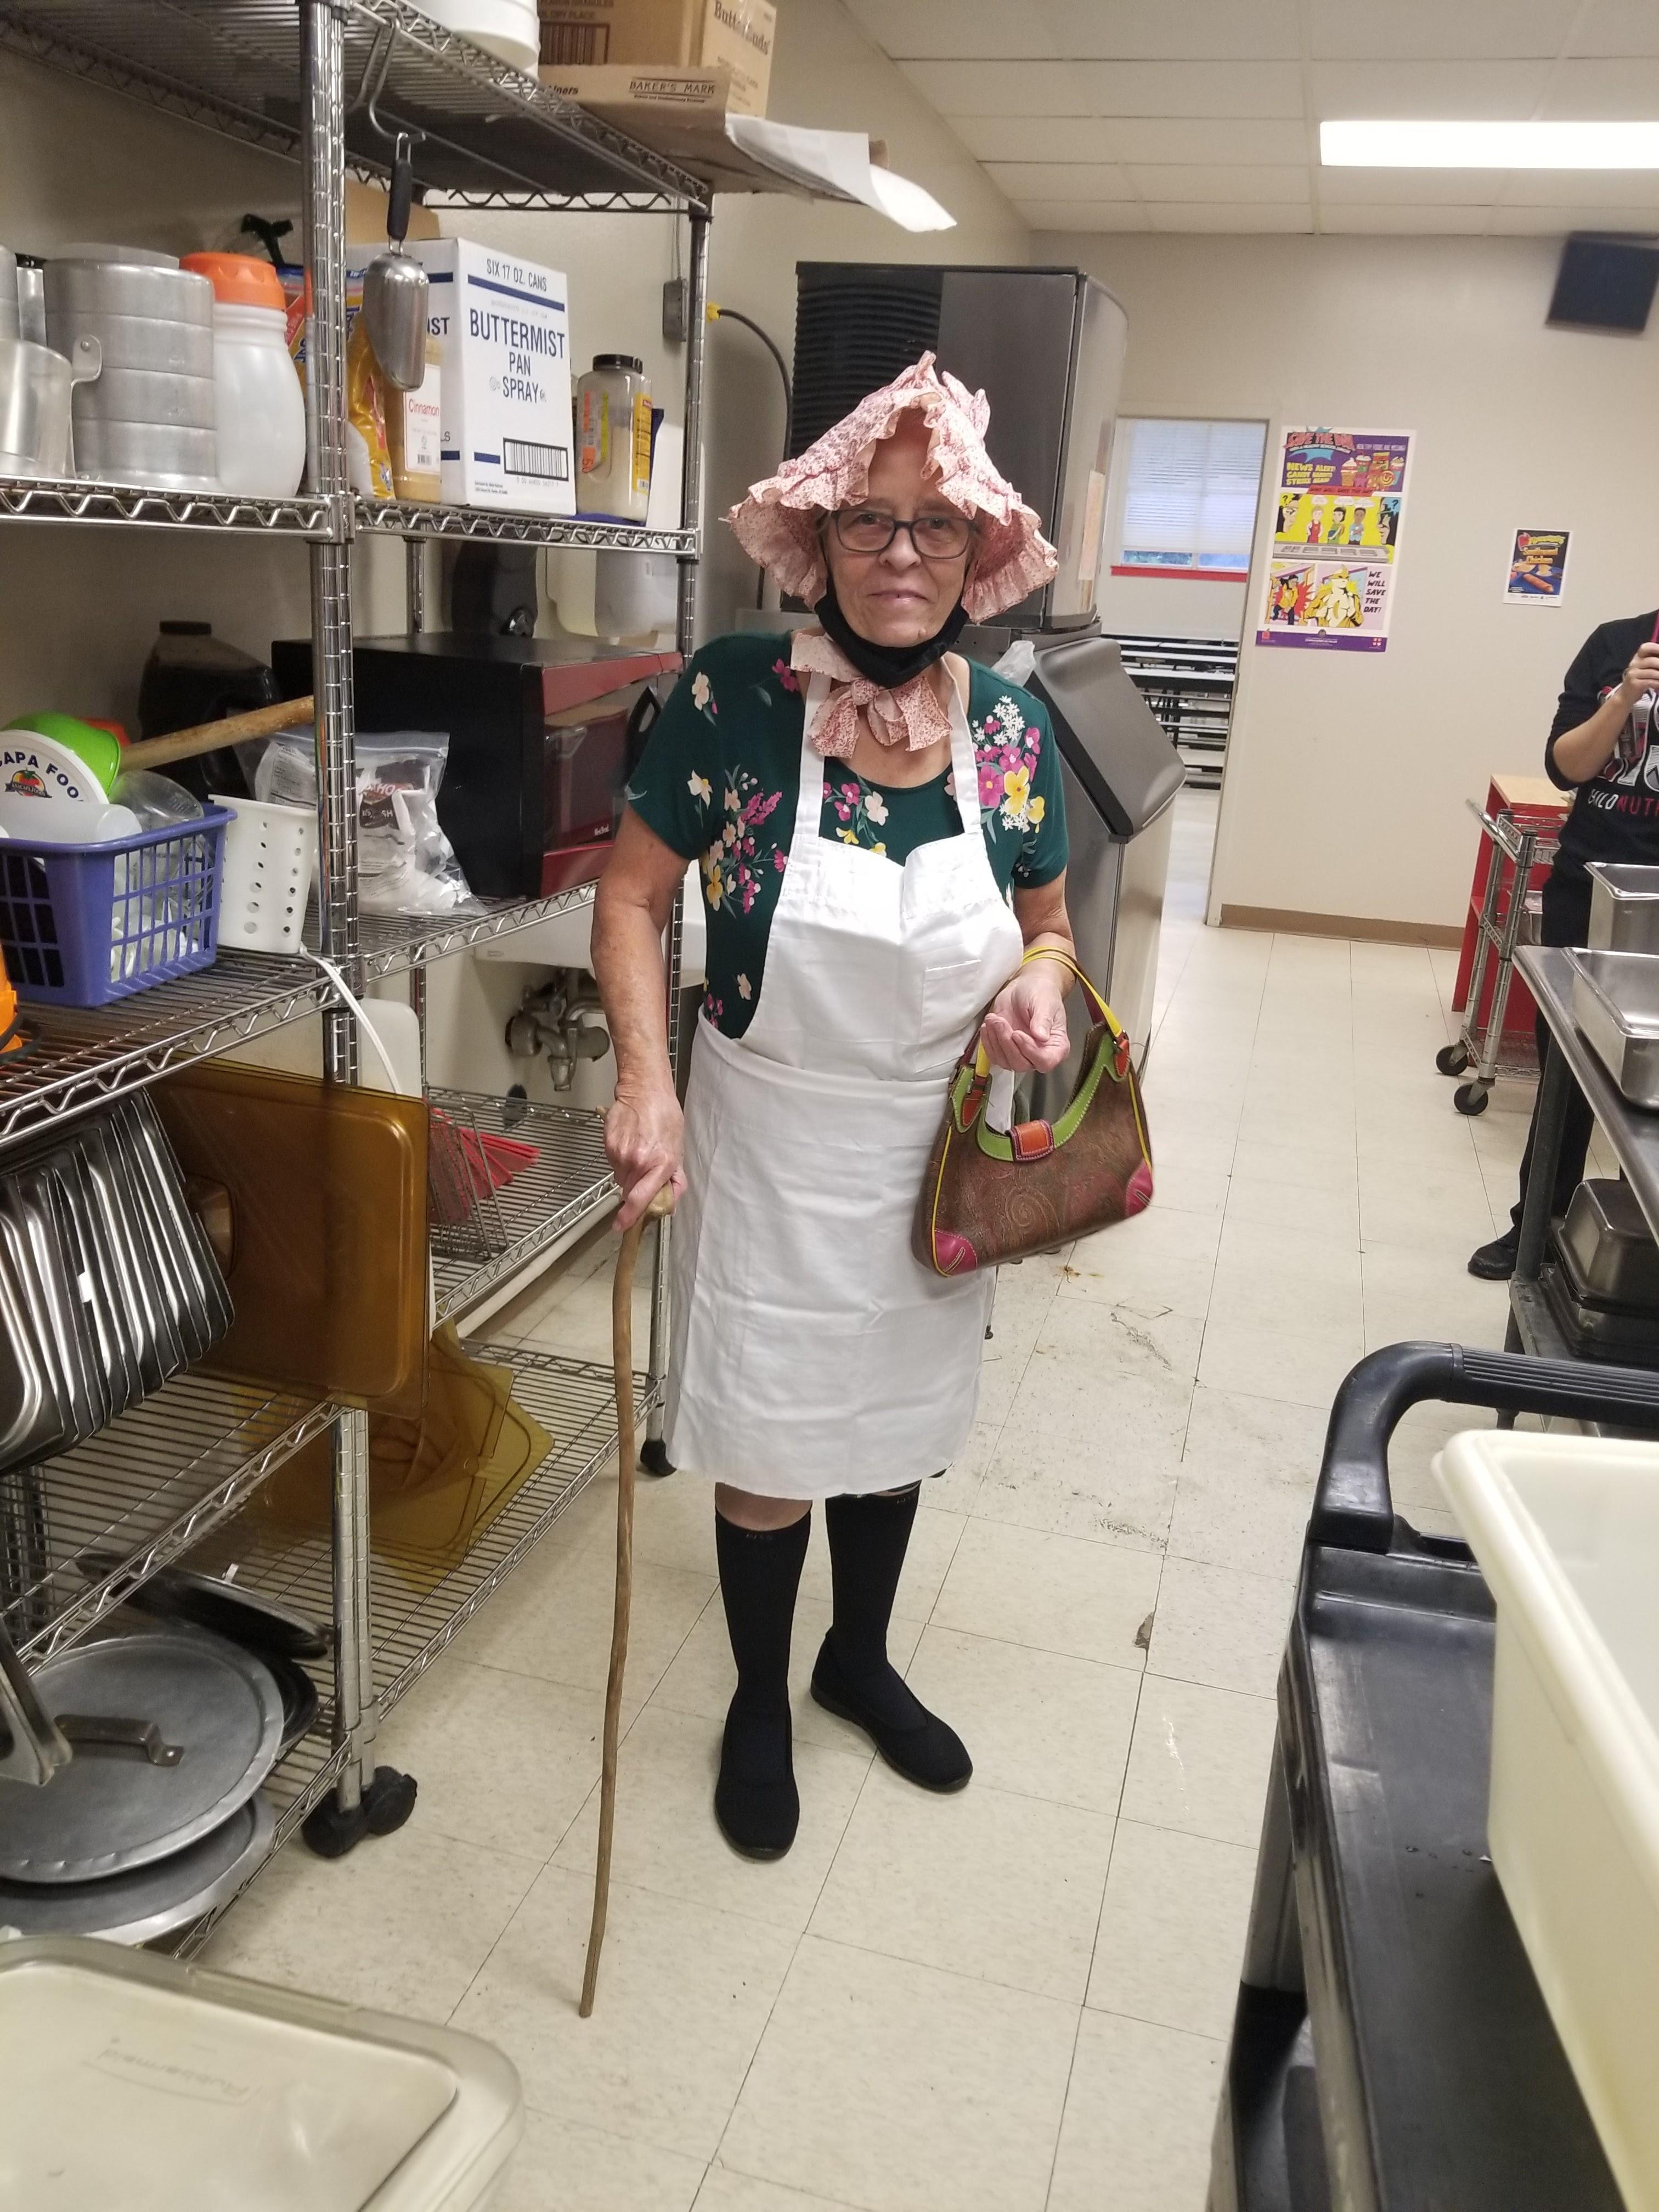 Drug Free Week - Dress like an old person day